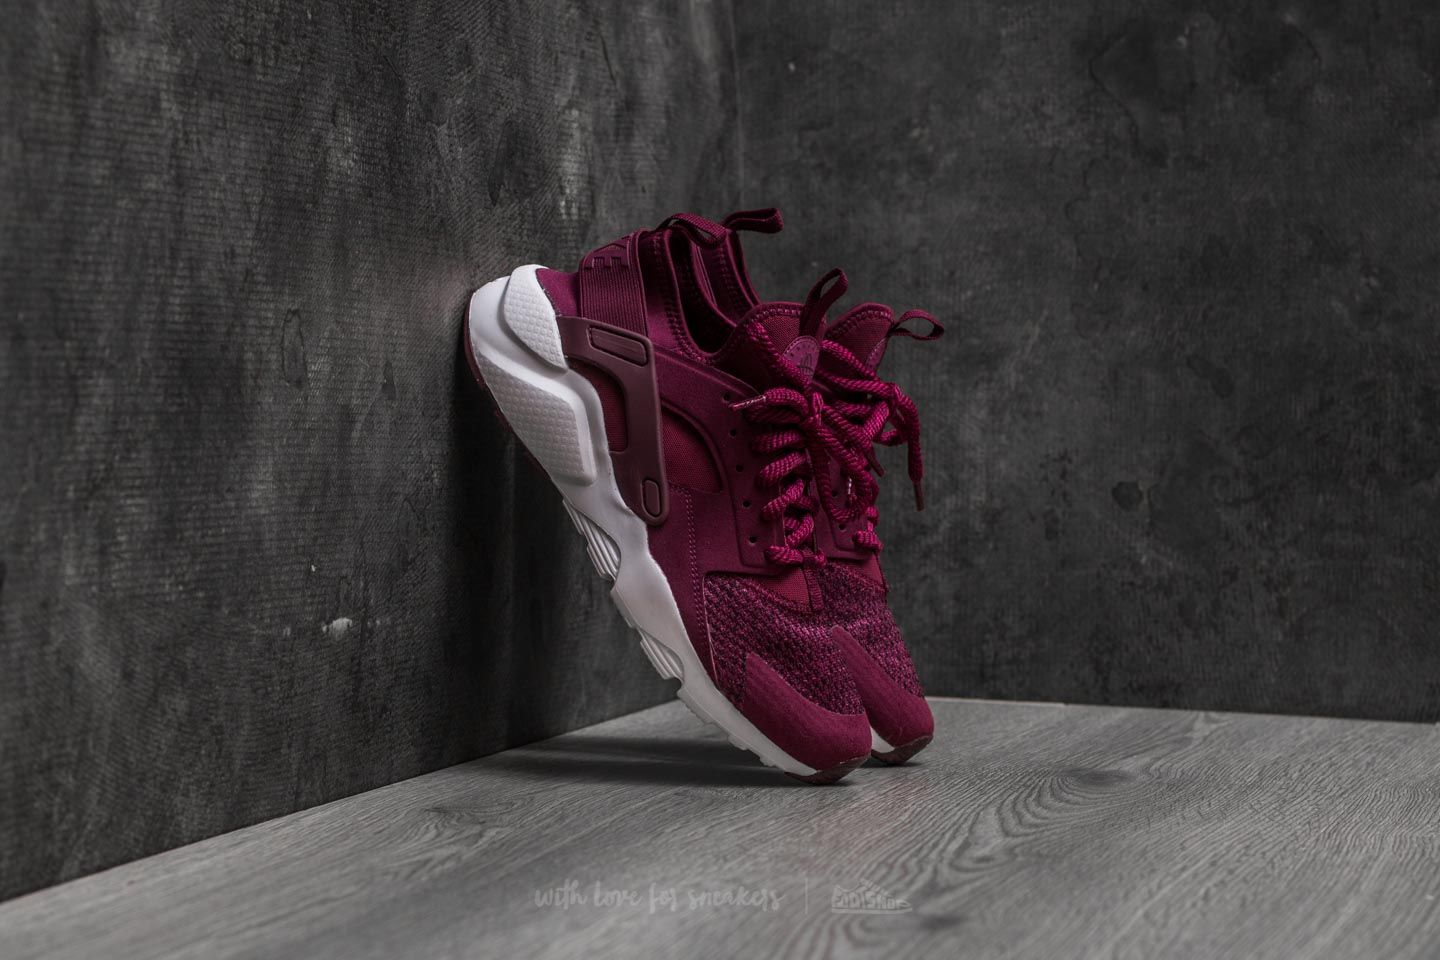 fb978f83c6f2 Nike Air Huarache Run Ultra SE (GS) Bordeaux  Bordeaux-Tea Berry ...